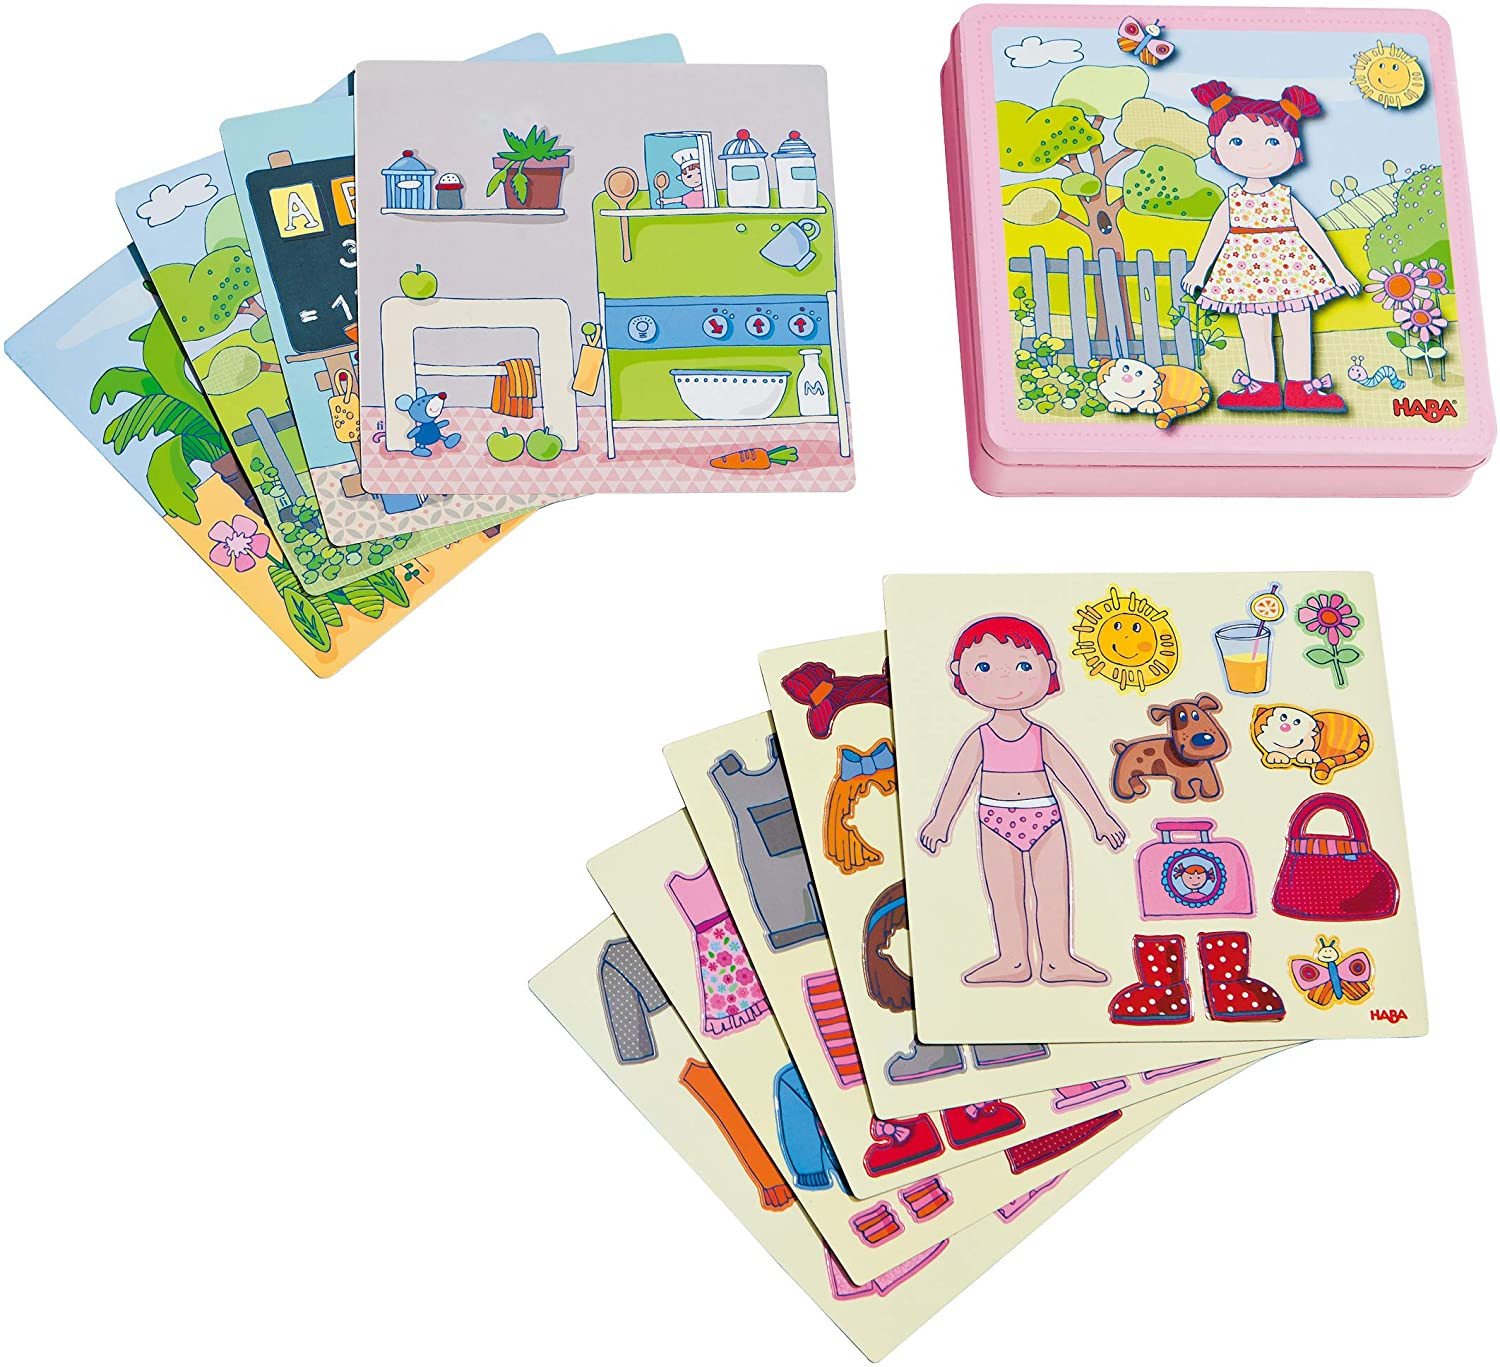 HABA Dress-up Doll Lilli Magnetic Game Box - 54 Magnet Pieces and 4 Backgrounds in a Sturdy Metal Tin